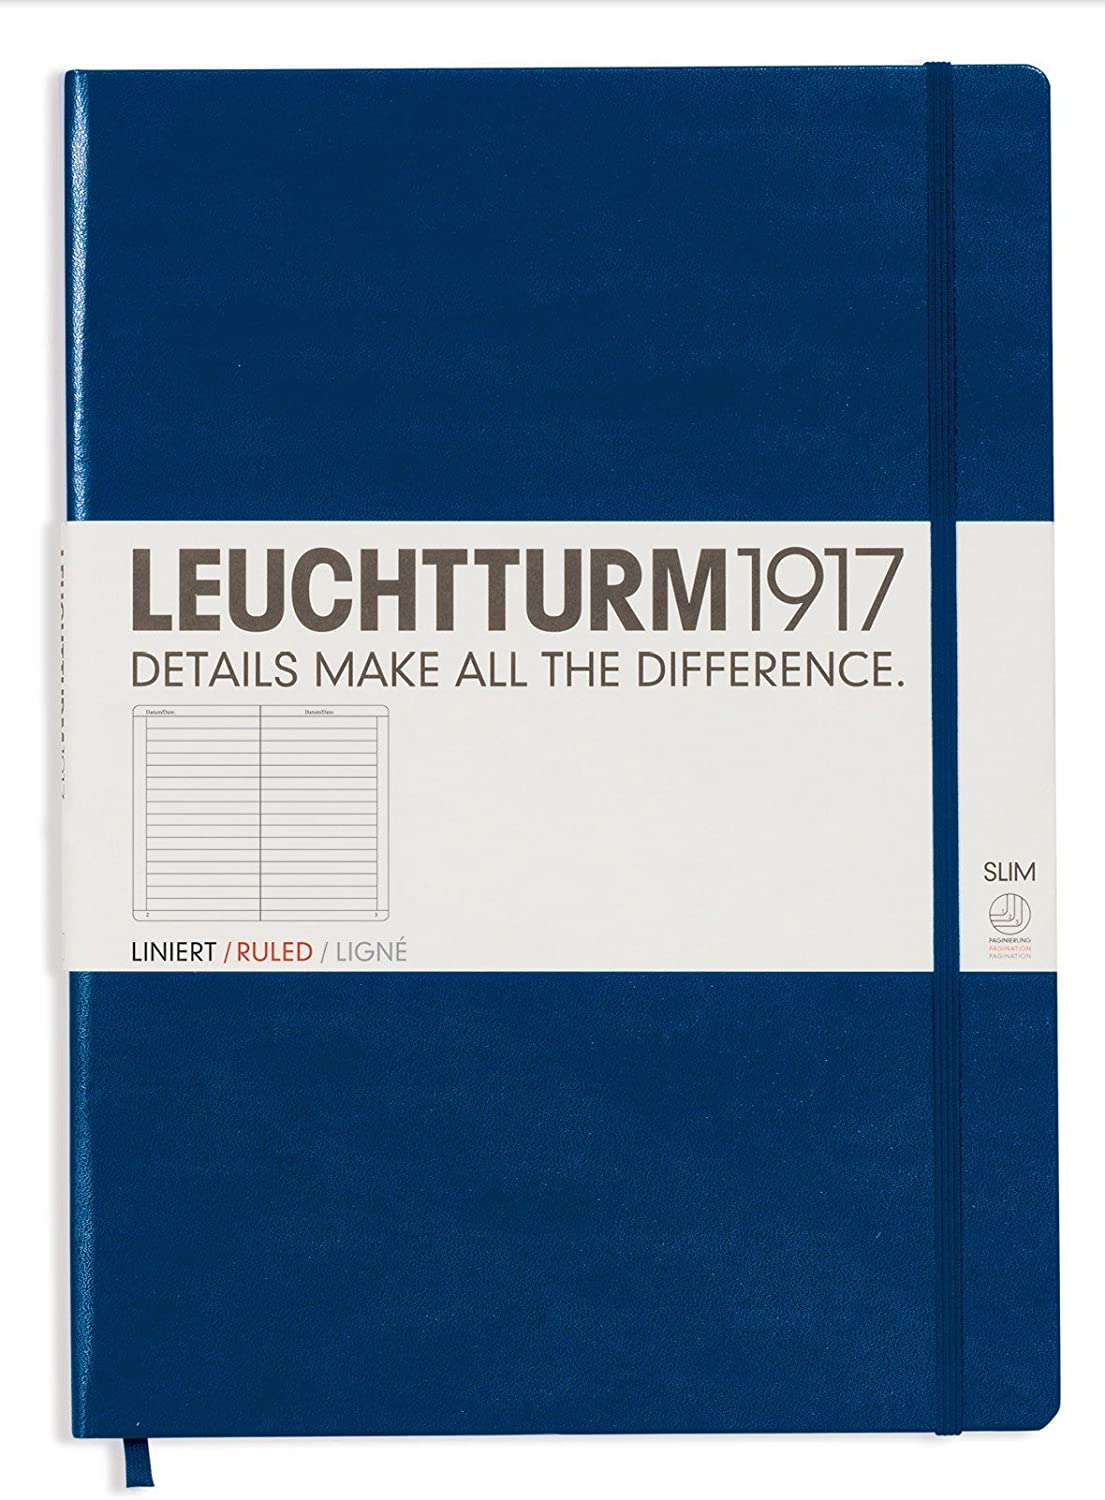 Leuchtturm1917 Master Slim Hardcover Ruled Notebook- 121 Numbered Pages, Navy